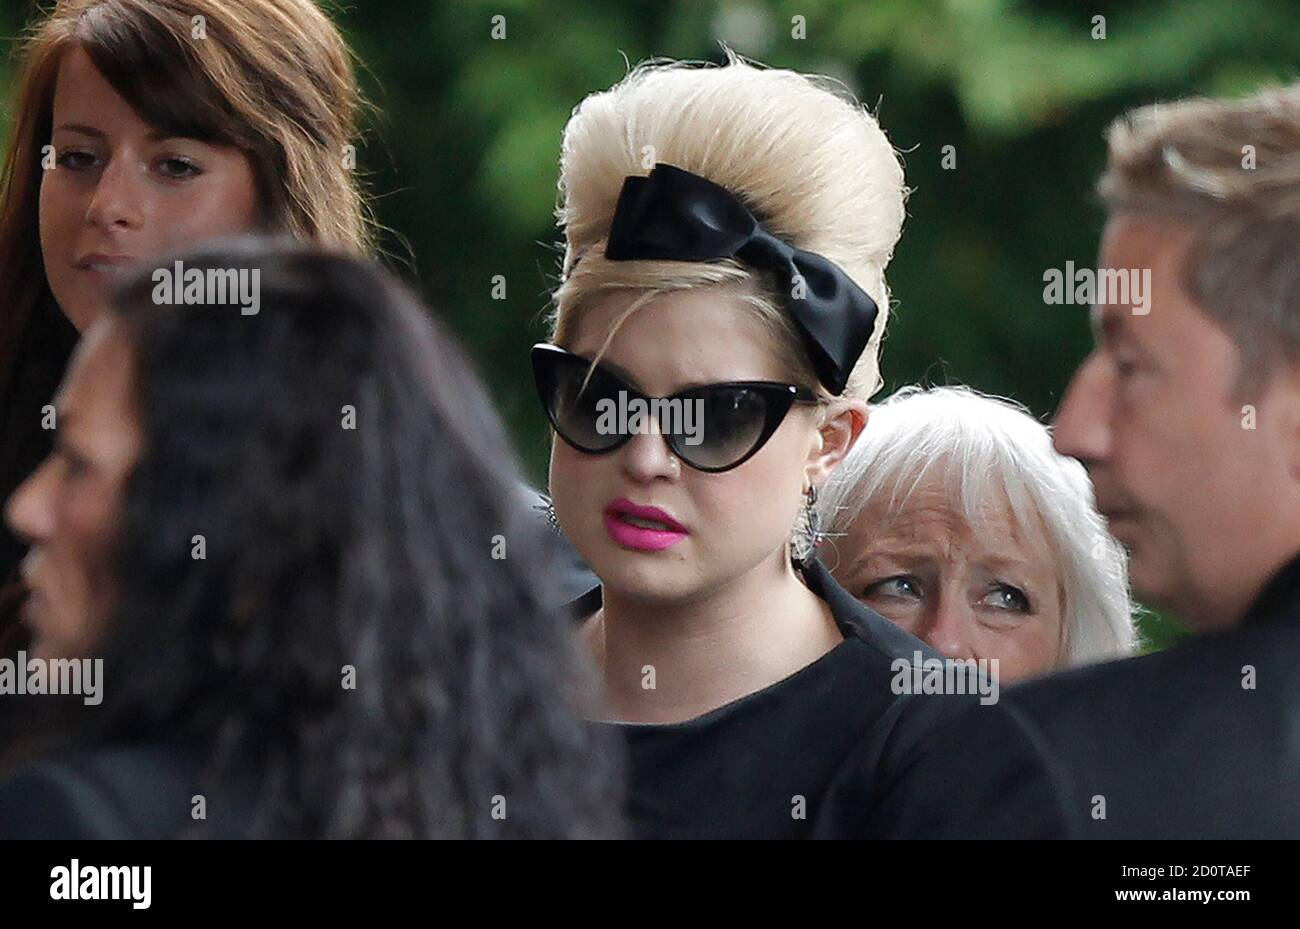 Kelly Osbourne Arrives With Other Mourners For The Cremation Of British Singer Amy Winehouse At Golders Green Crematorium In North London July 26 2011 The Funeral Of British Singer Amy Winehouse Was